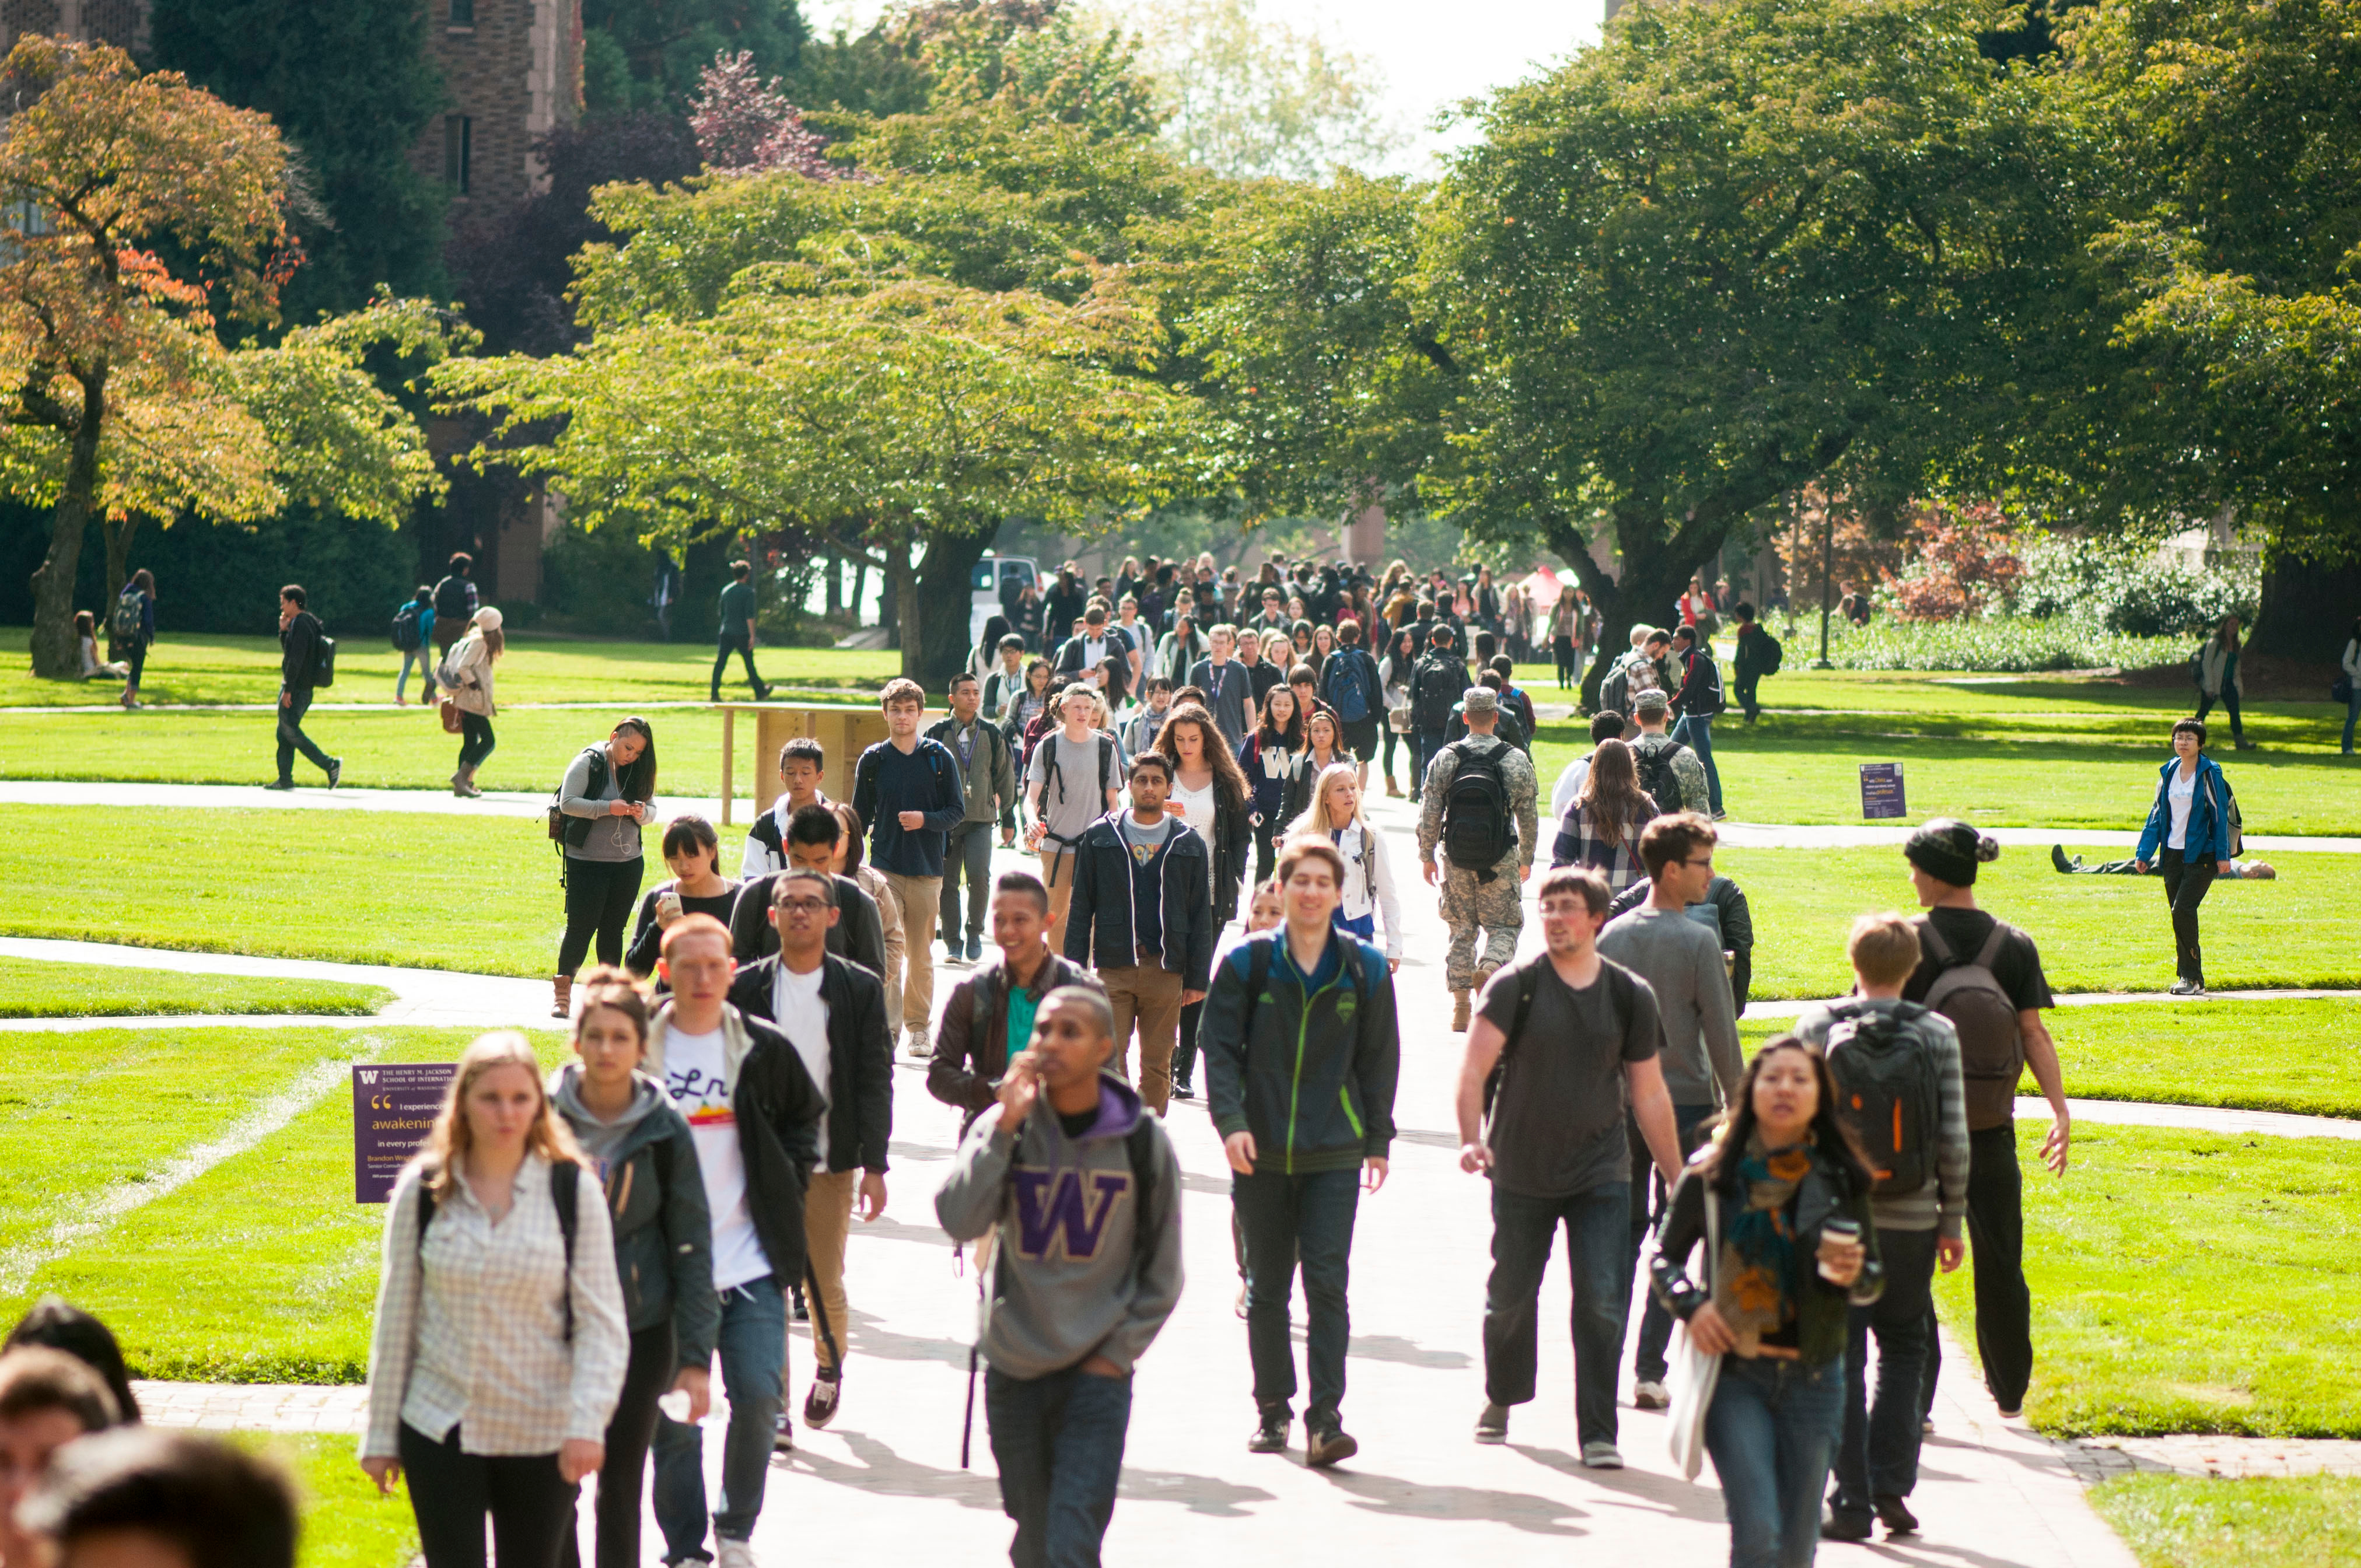 uw joins effort to rethink admissions criteria developing new